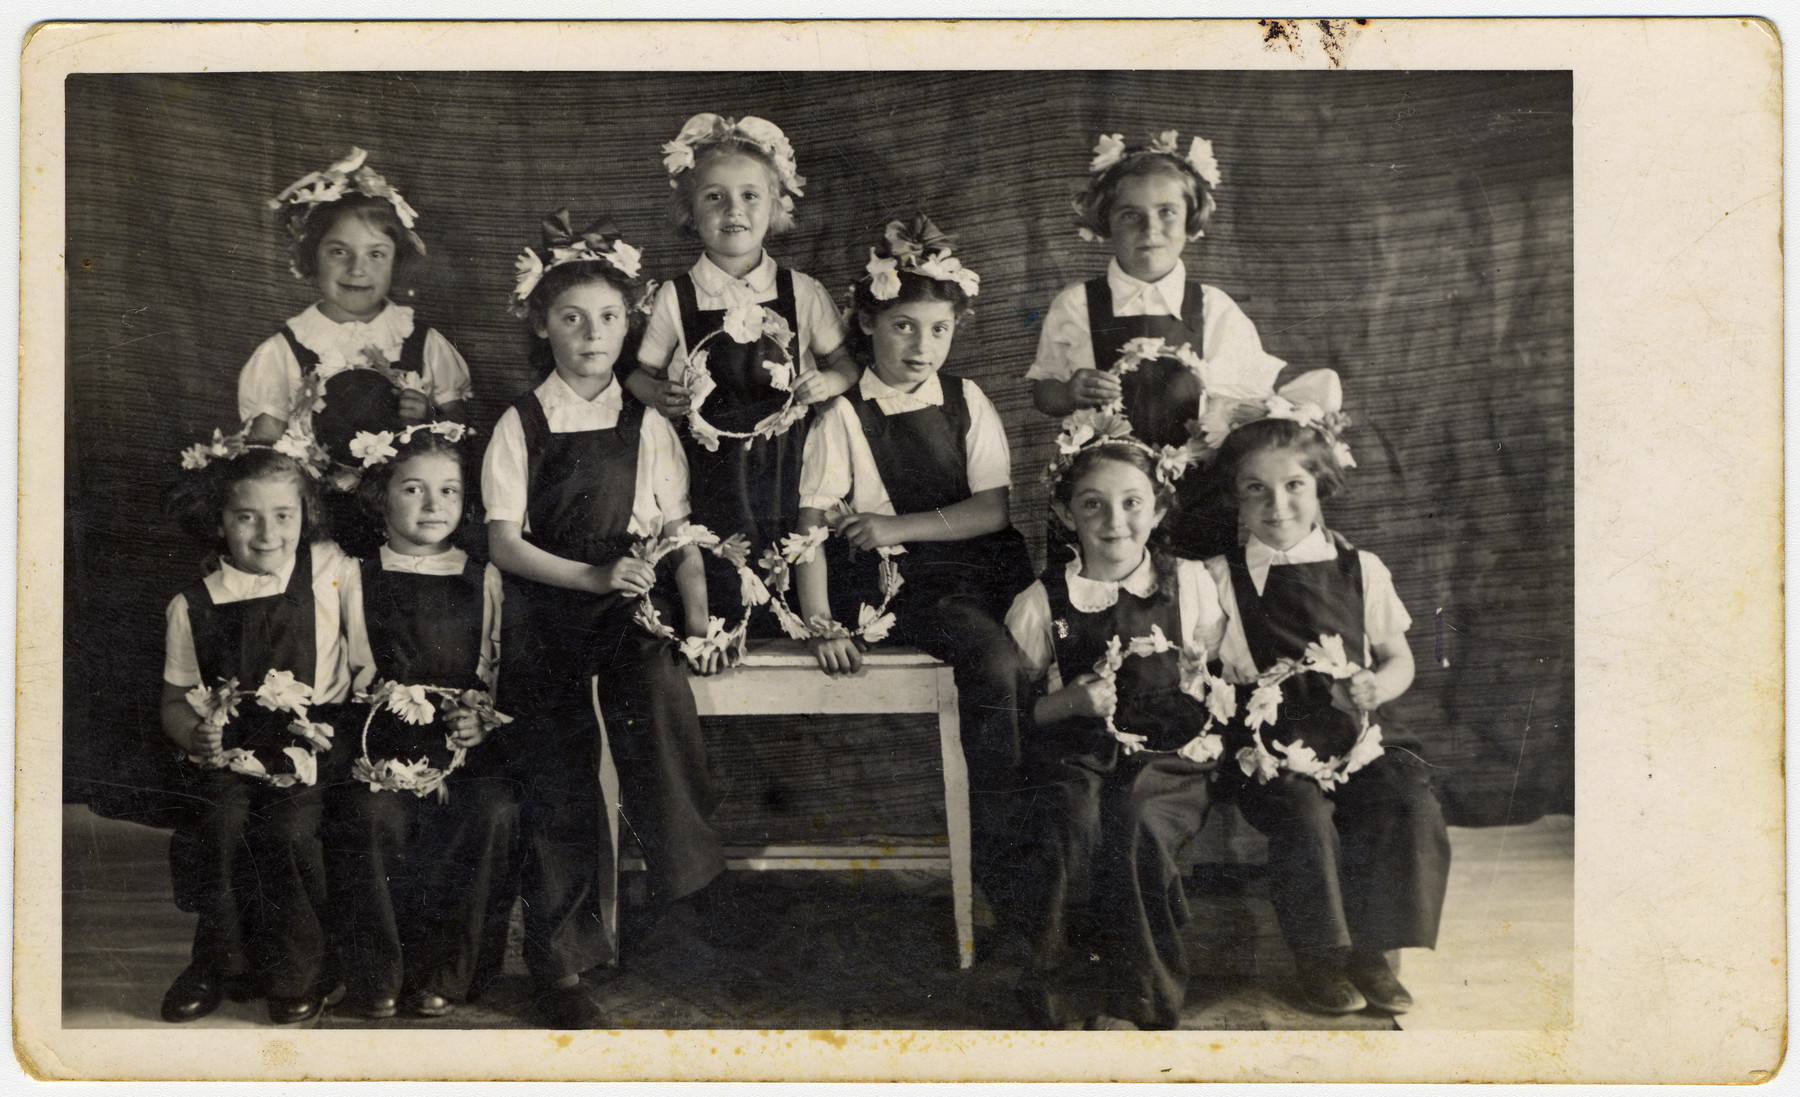 Young girls, dressed in overalls and with flowers in their hair, put on a school performance at the Novaky labor camp.  Among those pictured are Mira Menzer (sitting second from right) and twin sisters (sitting on the table).